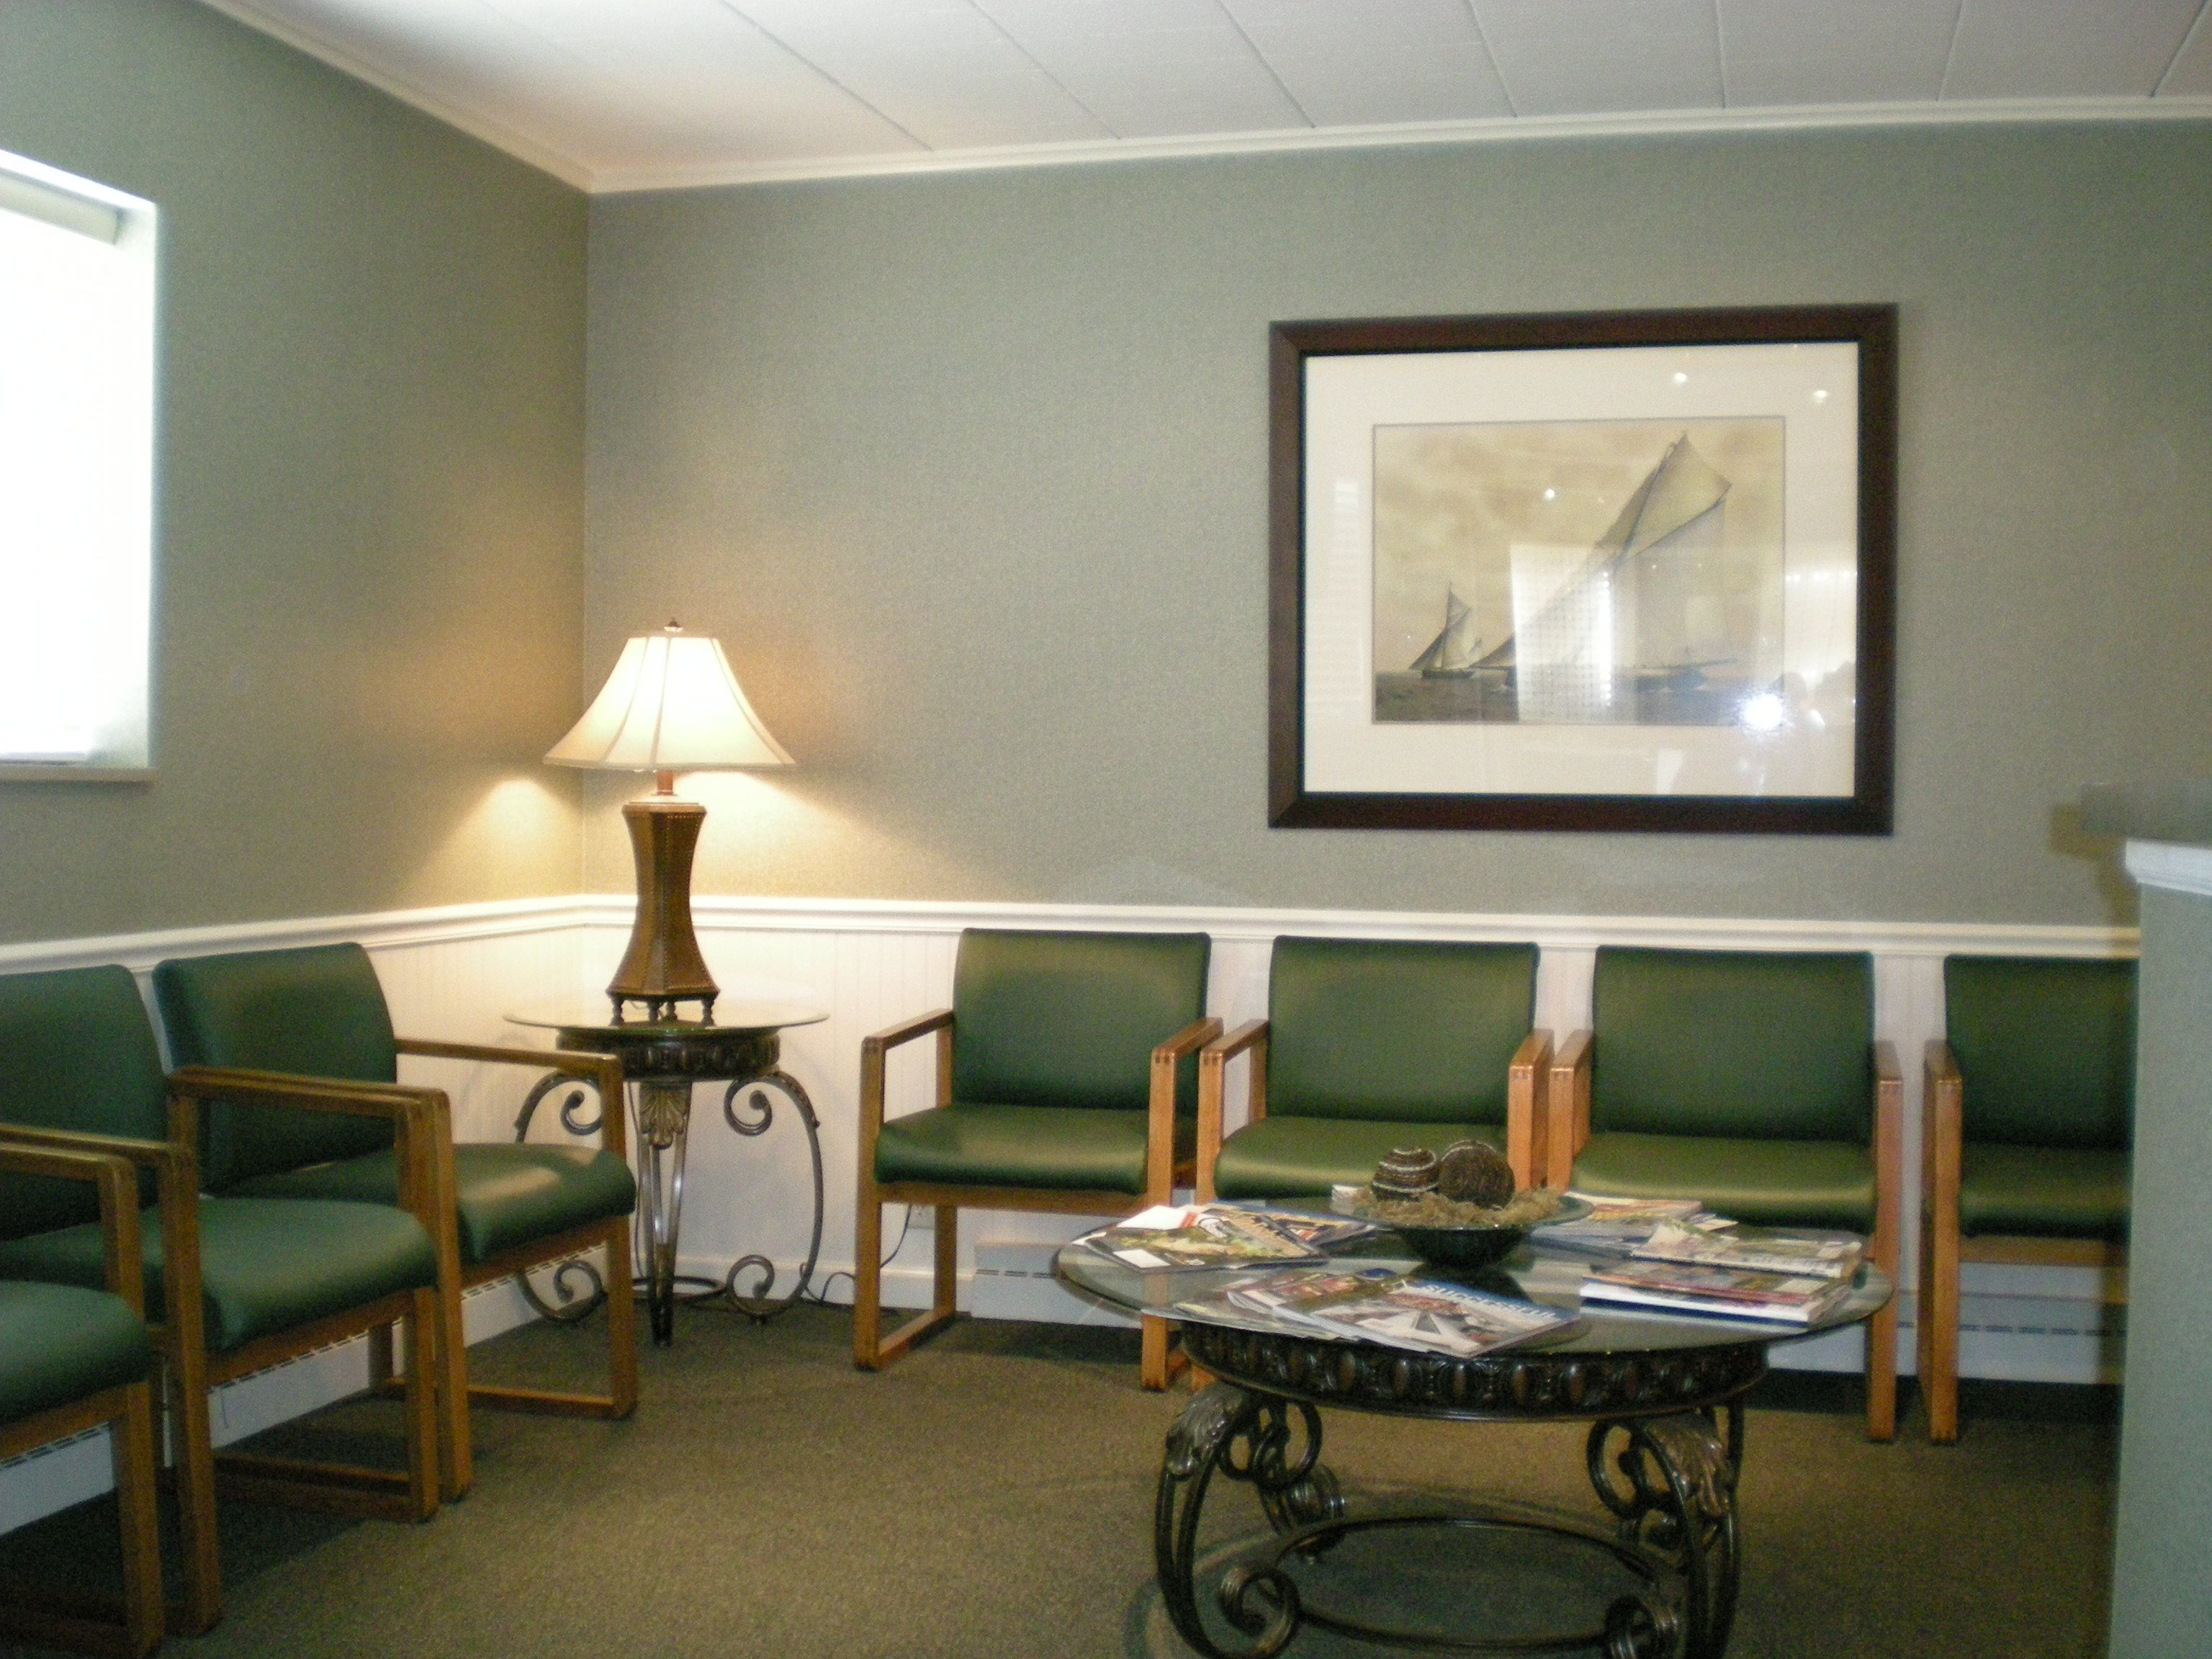 Waiting room interior design with green chairs ideas for for Office room interior designs